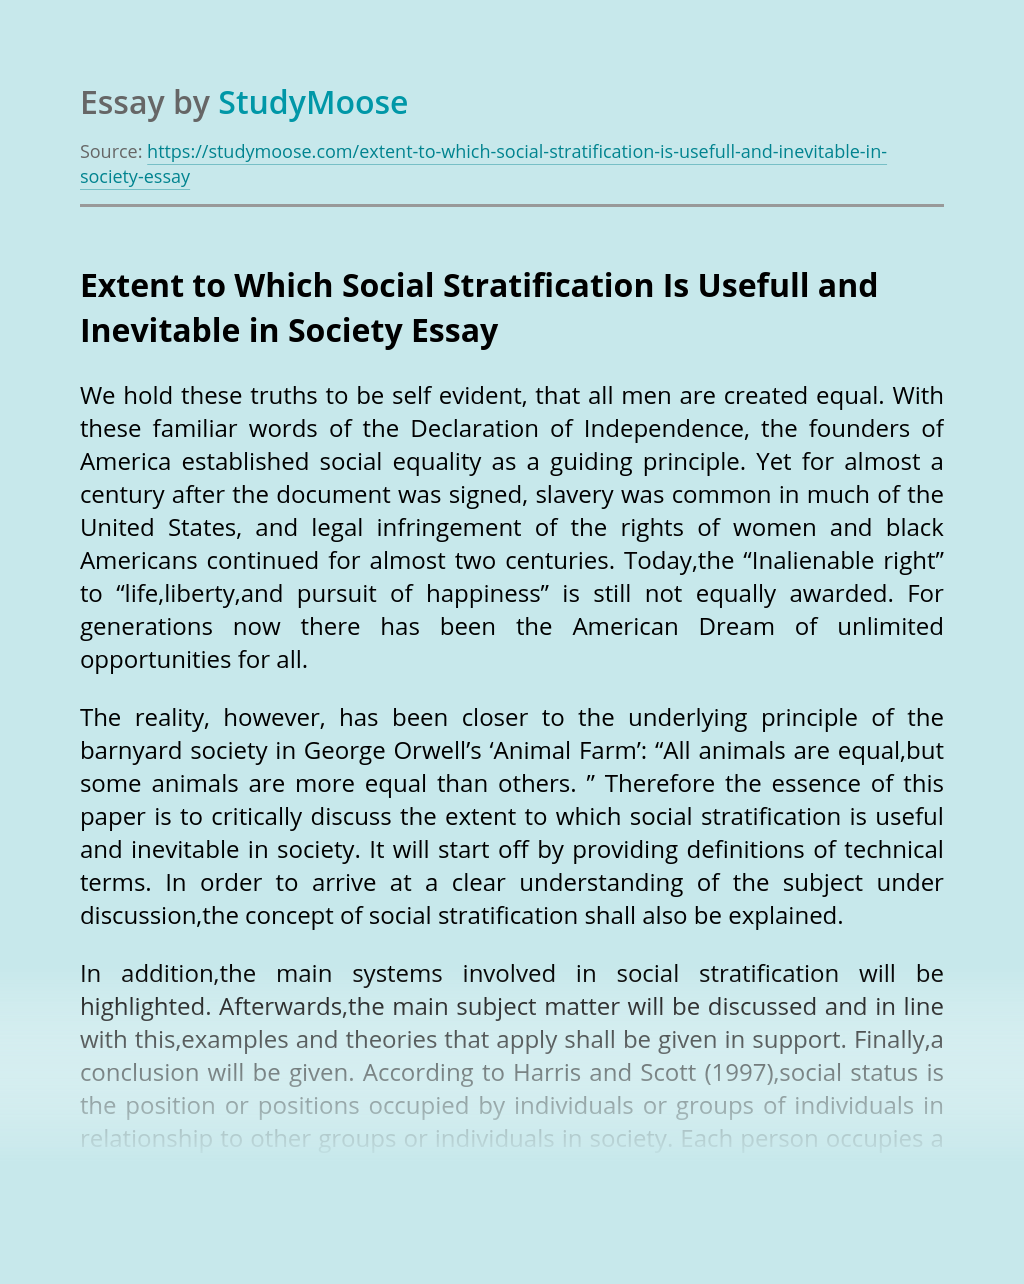 Extent to Which Social Stratification Is Usefull and Inevitable in Society